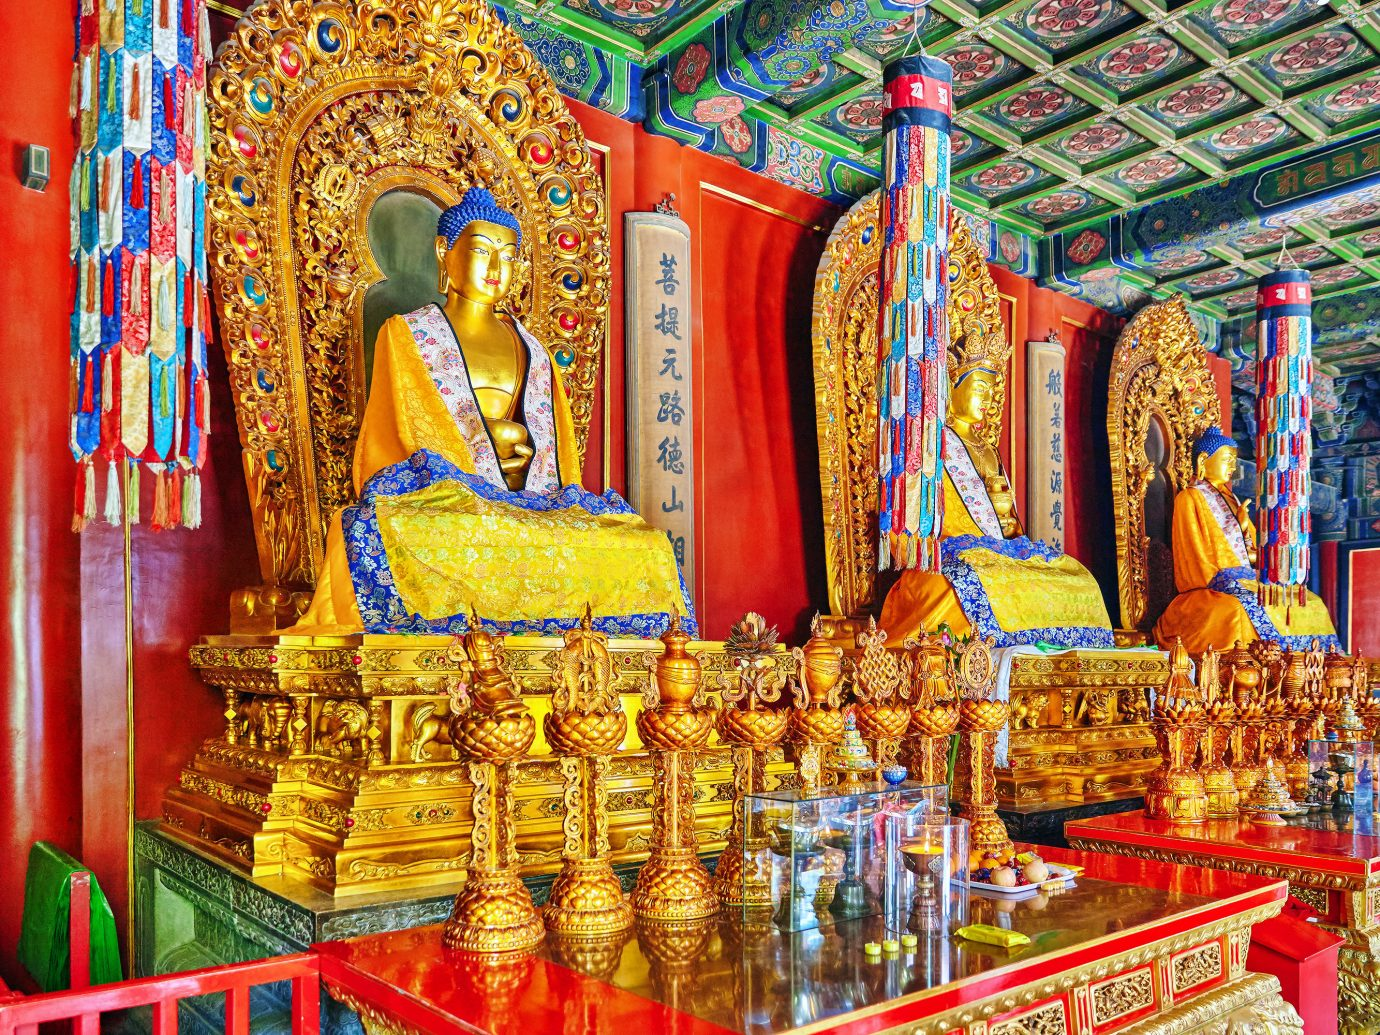 Trip Ideas bazaar building hindu temple place of worship City wat shrine temple colorful stall tradition store altar sale colored